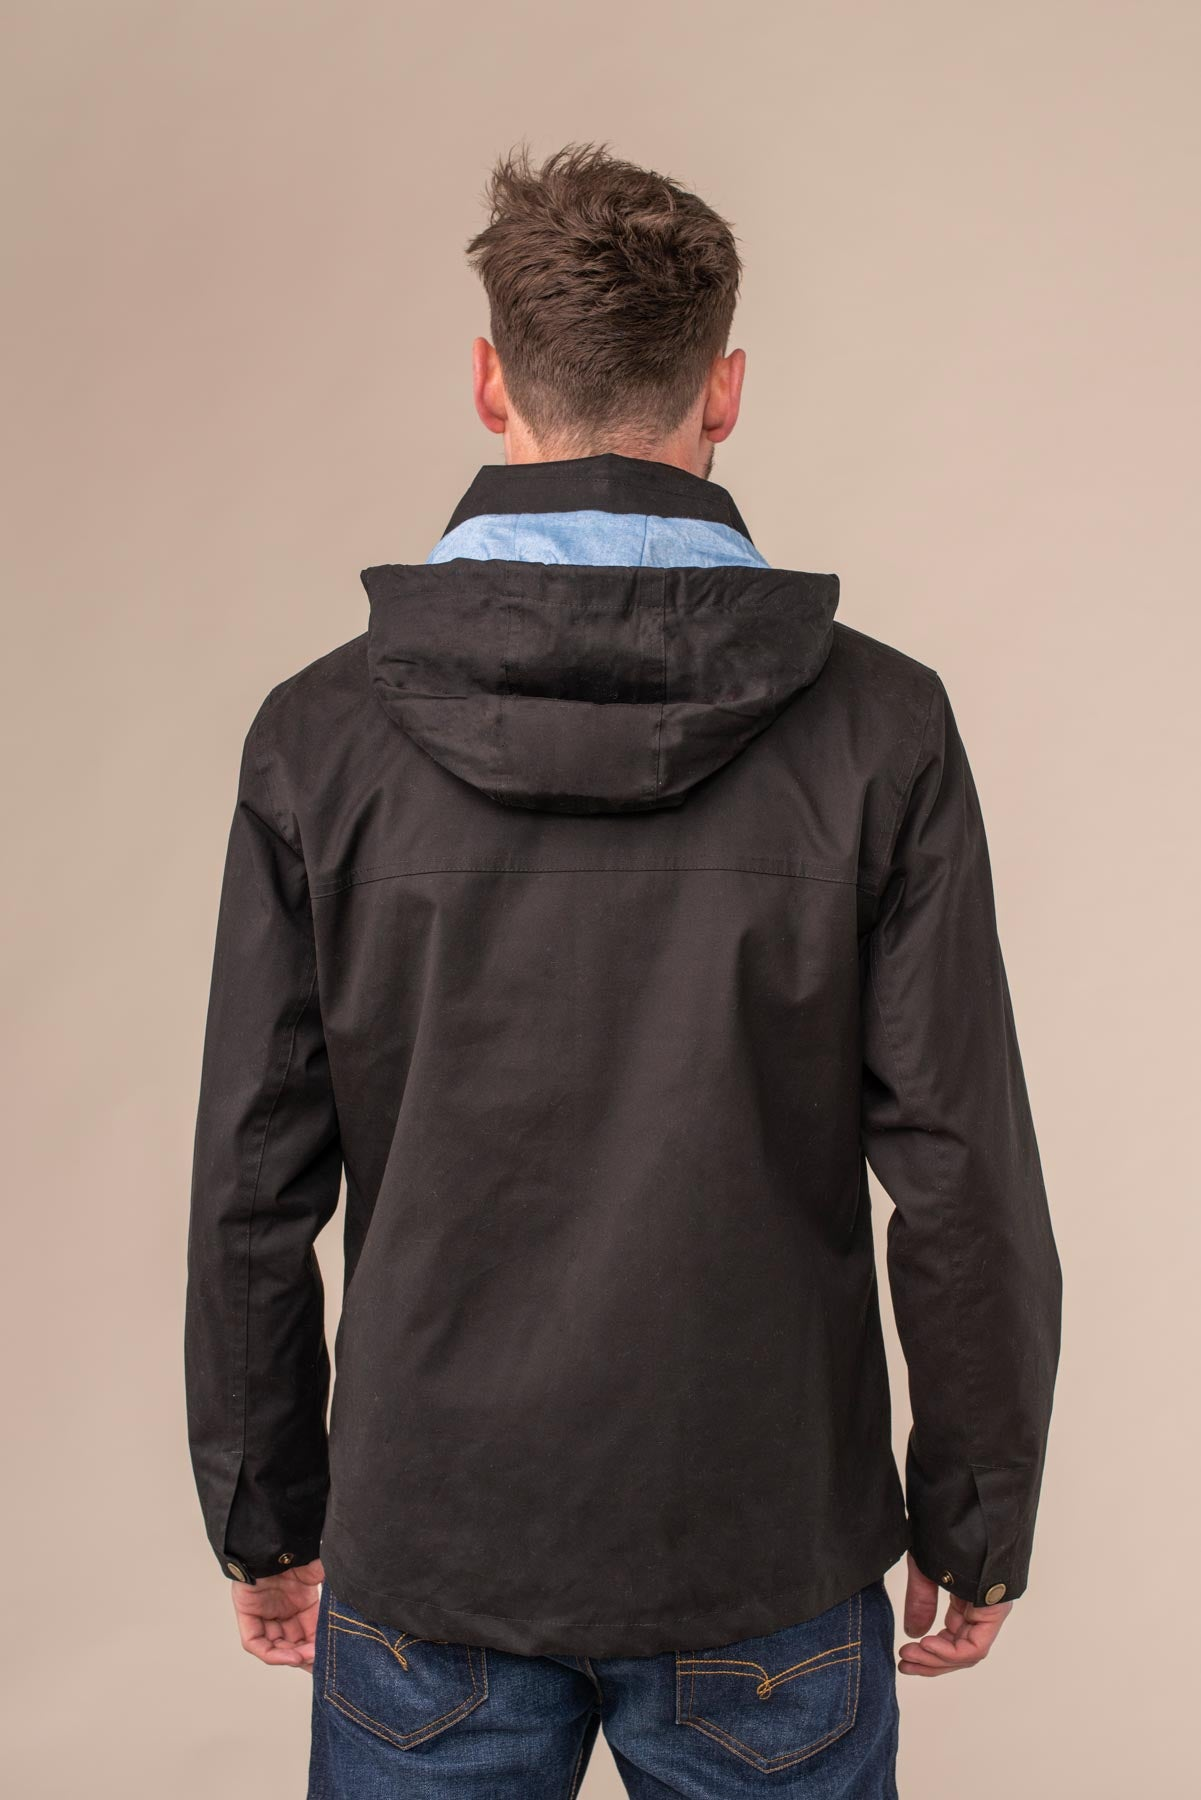 Islander Jacket - Black. Mens Waterproof Raincoat | Lighthouse